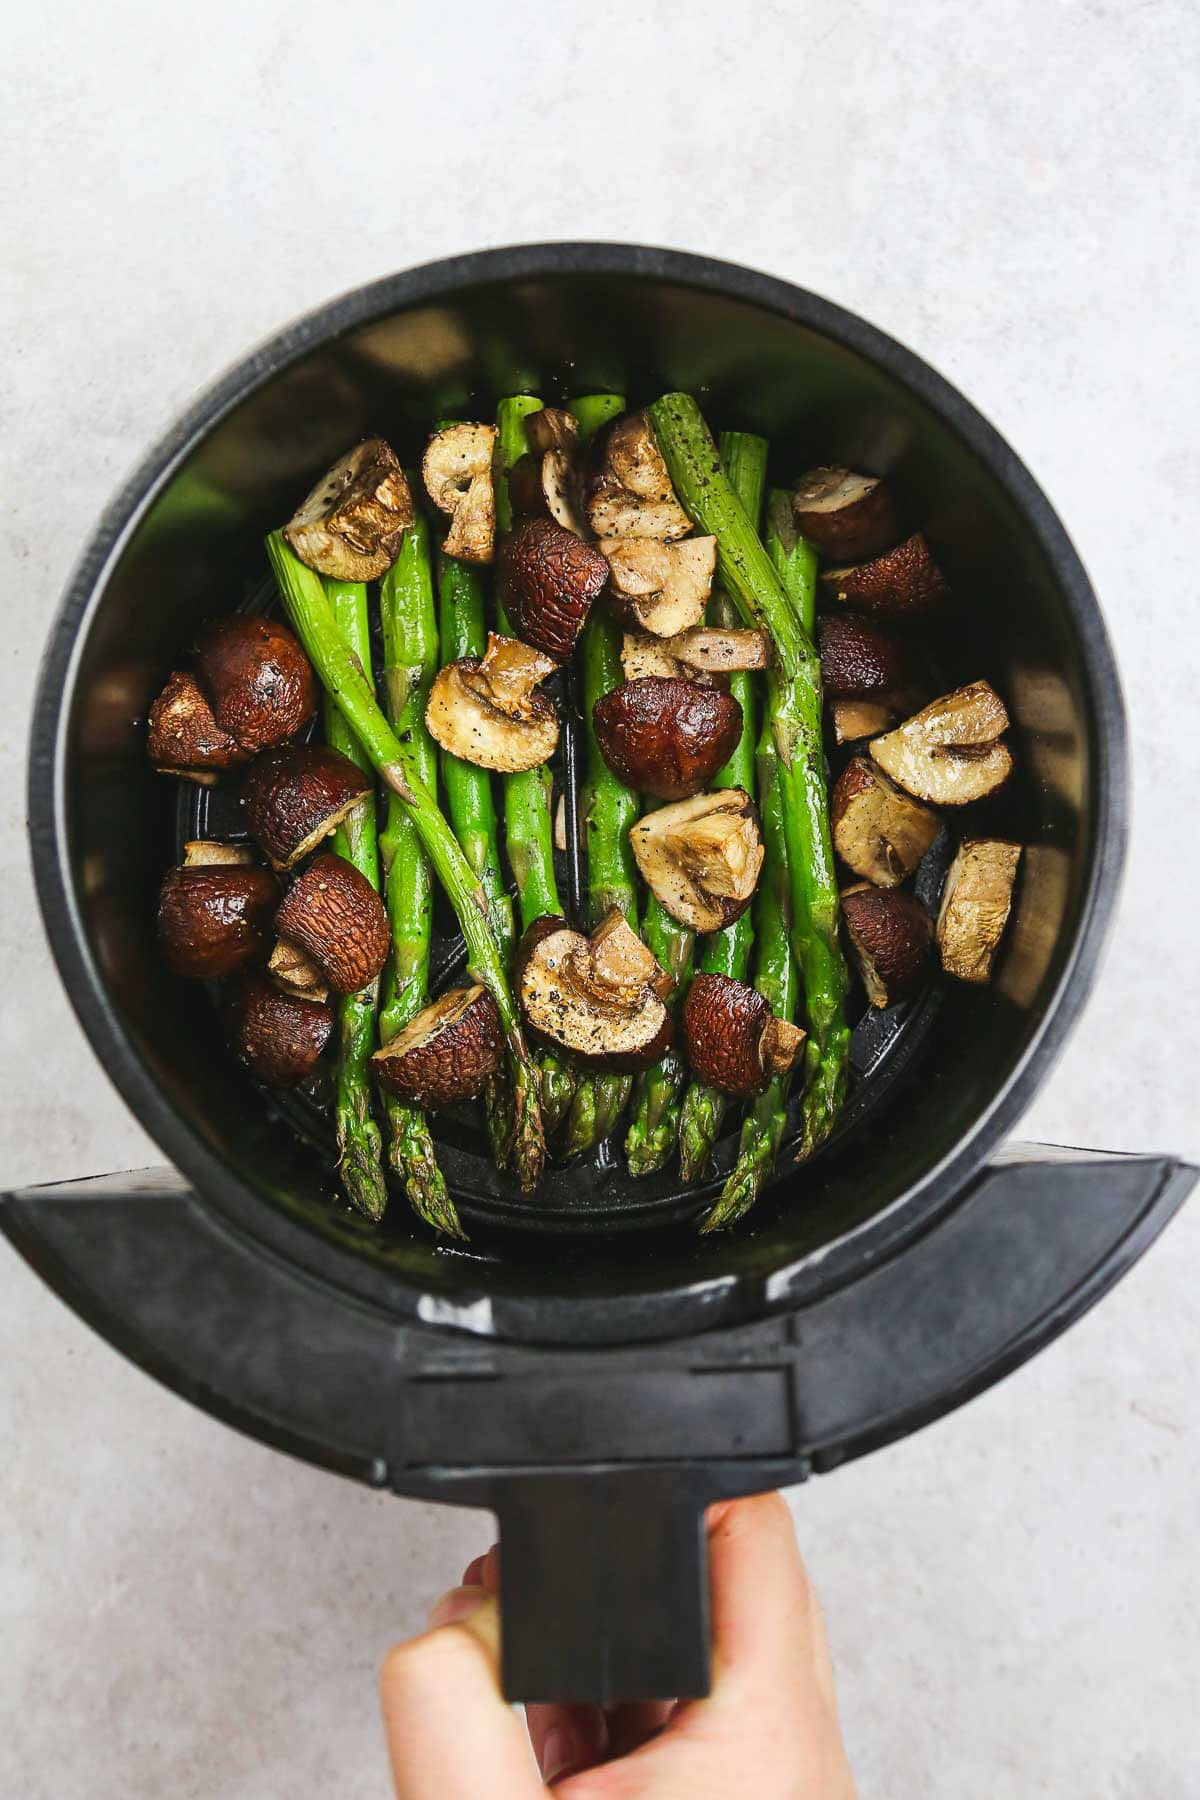 Ready and crispy asparagus and mushrooms in the air fryer basket.